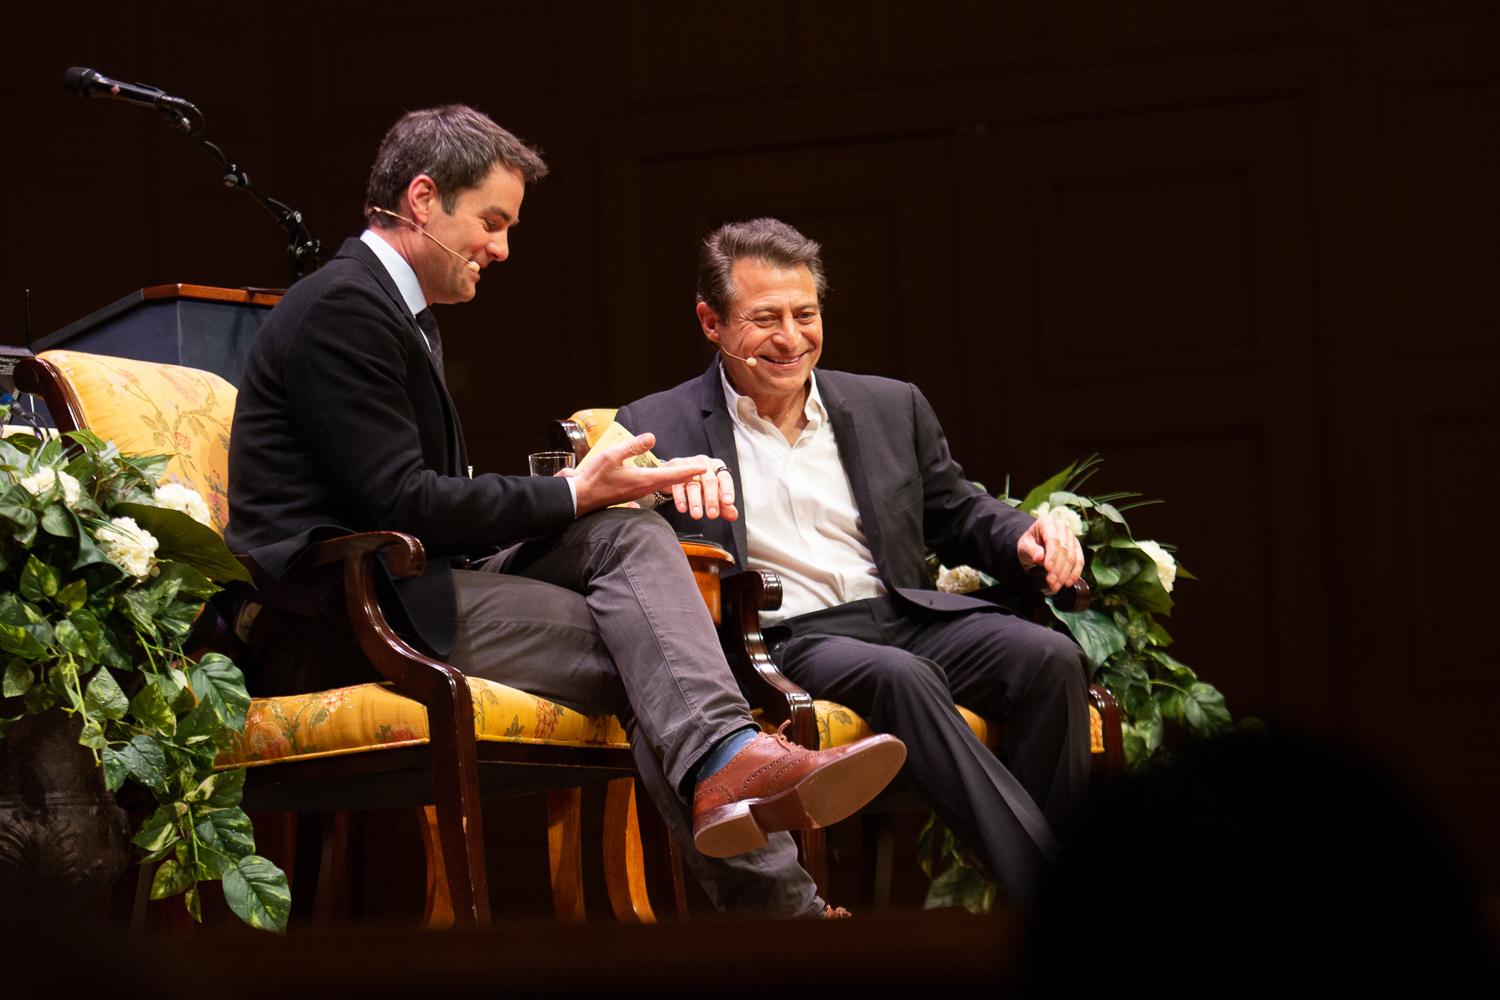 Peter Diamandis sits on stage with Jared Bowen